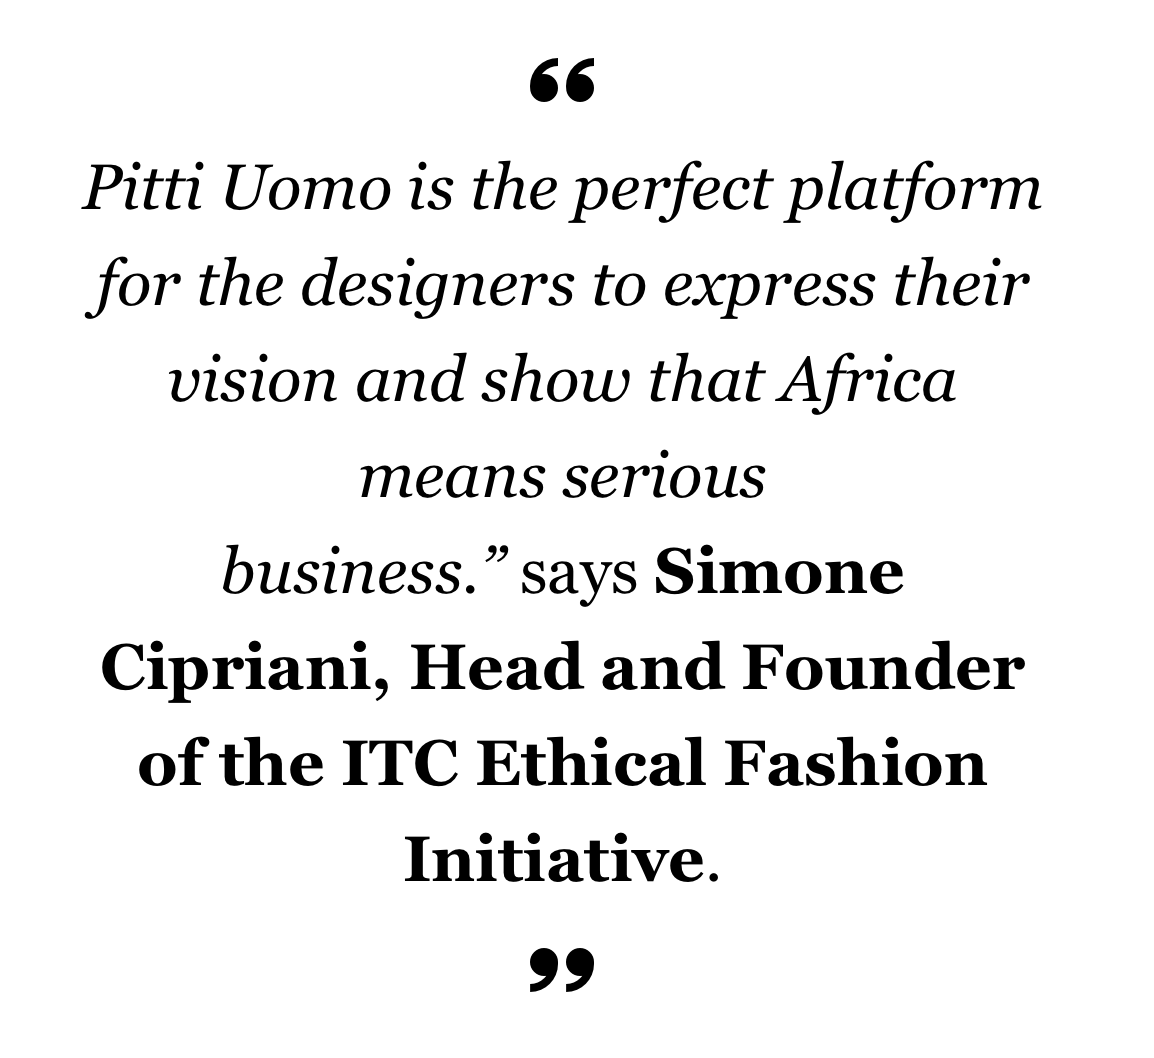 Generation Africa Designers selected by Ethical Fashion Initiative for Pitti Uomo 89, ITC Ethical Fashion Initiative AKJP, Ikire Jones, Lukhanyo Mdingi x Nicholas Coutts & Ur